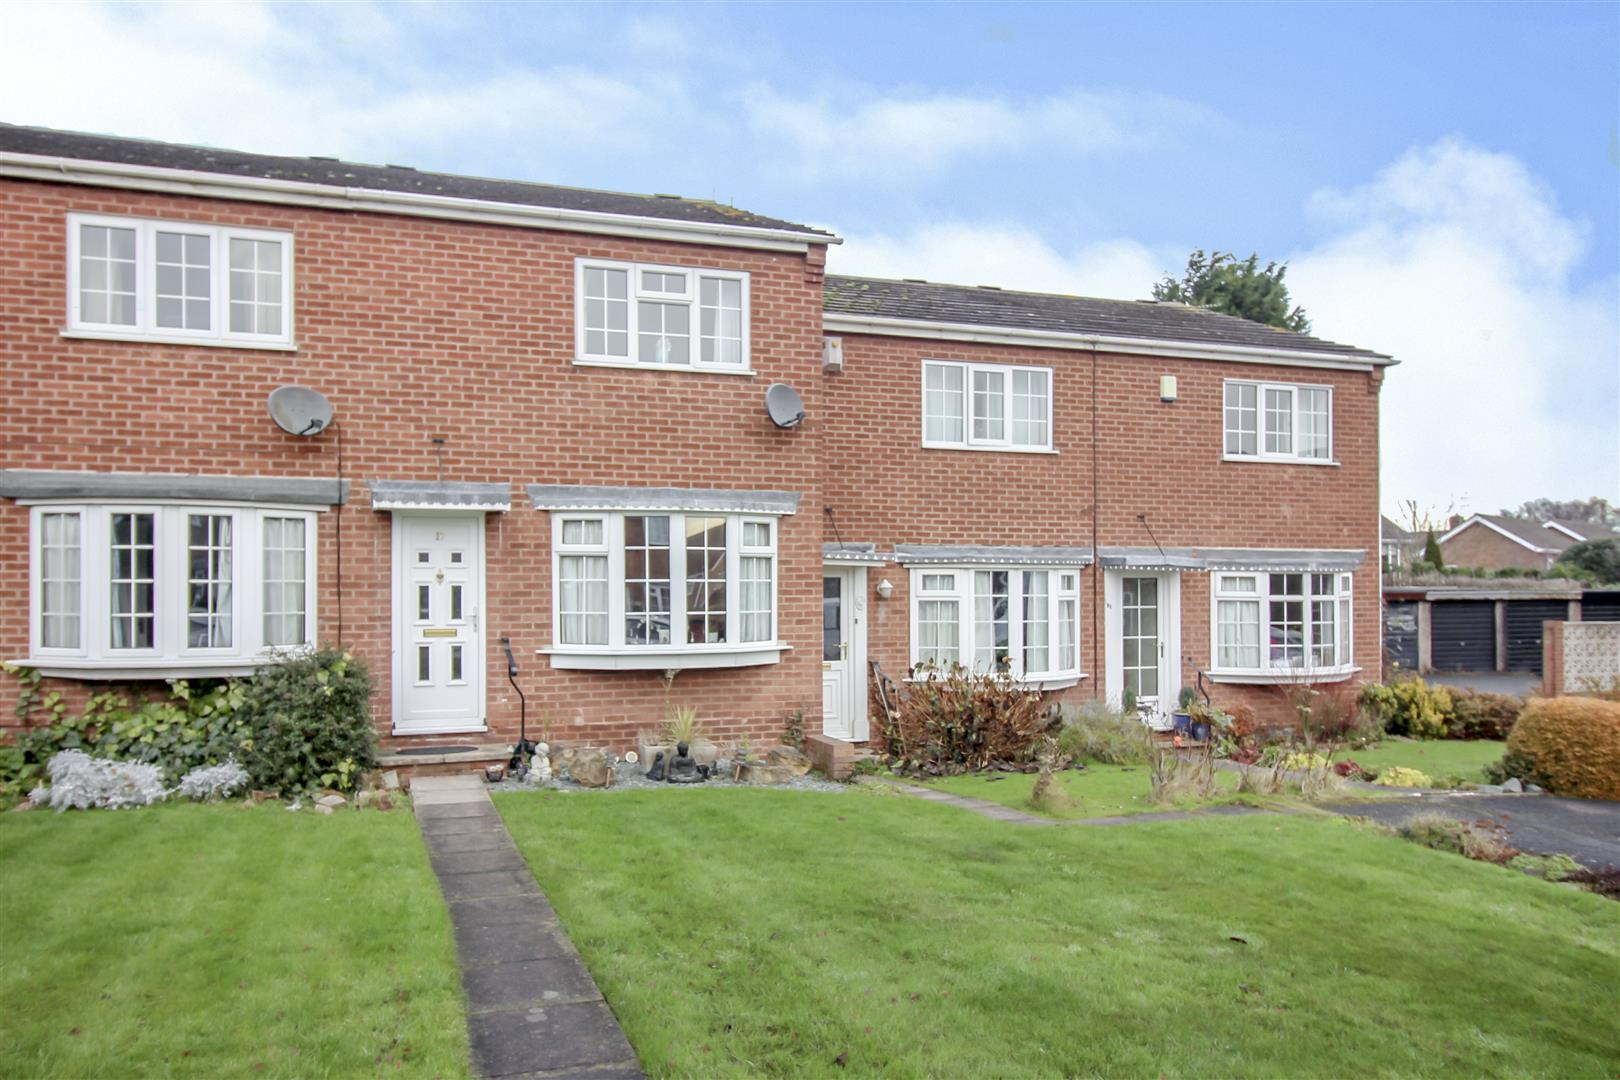 2 Bedrooms House for sale in Sunlea Crescent, Stapleford,